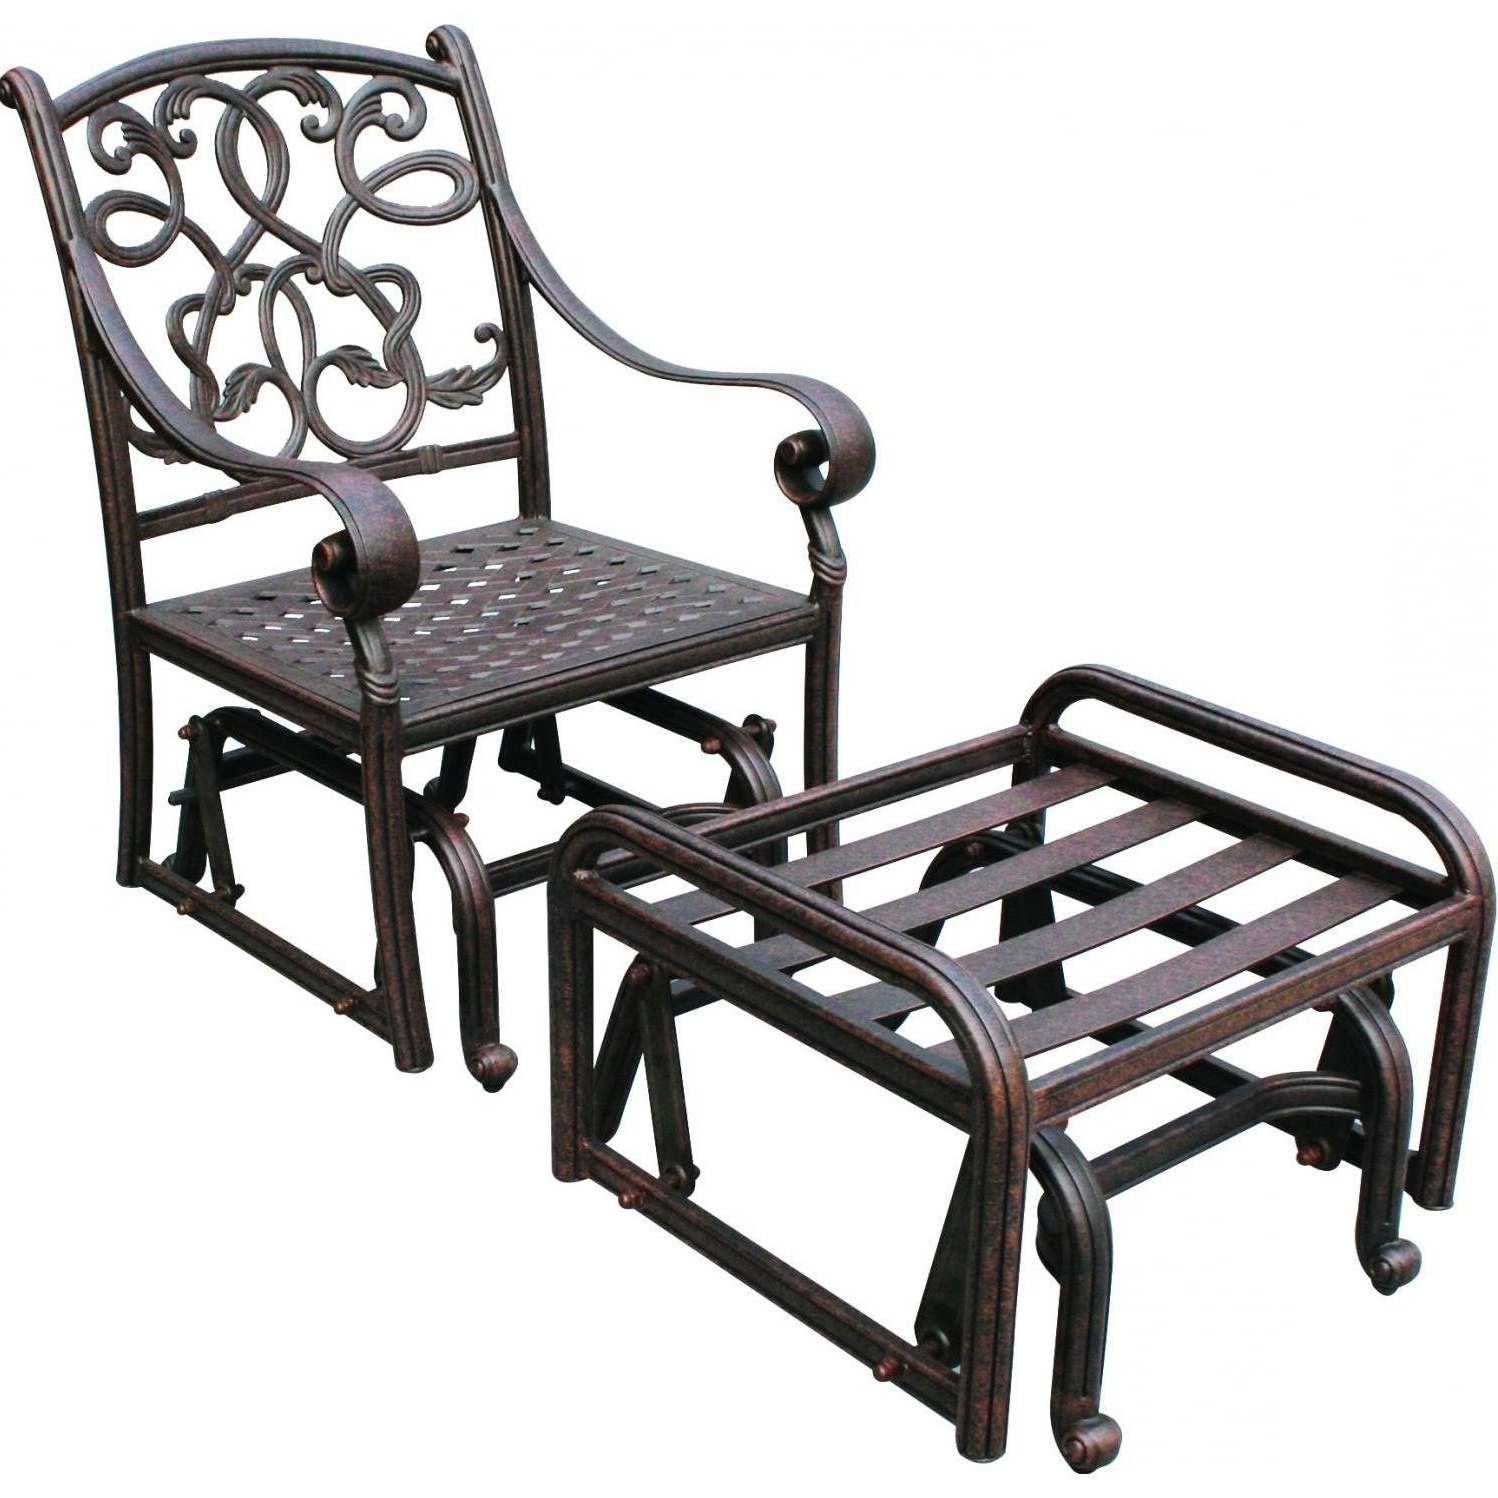 Patio Rocking Chairs With Ottoman With Best And Newest Chair : Rocker Plans Wicker Resin Lounge Sling Patio Furniture (View 13 of 15)